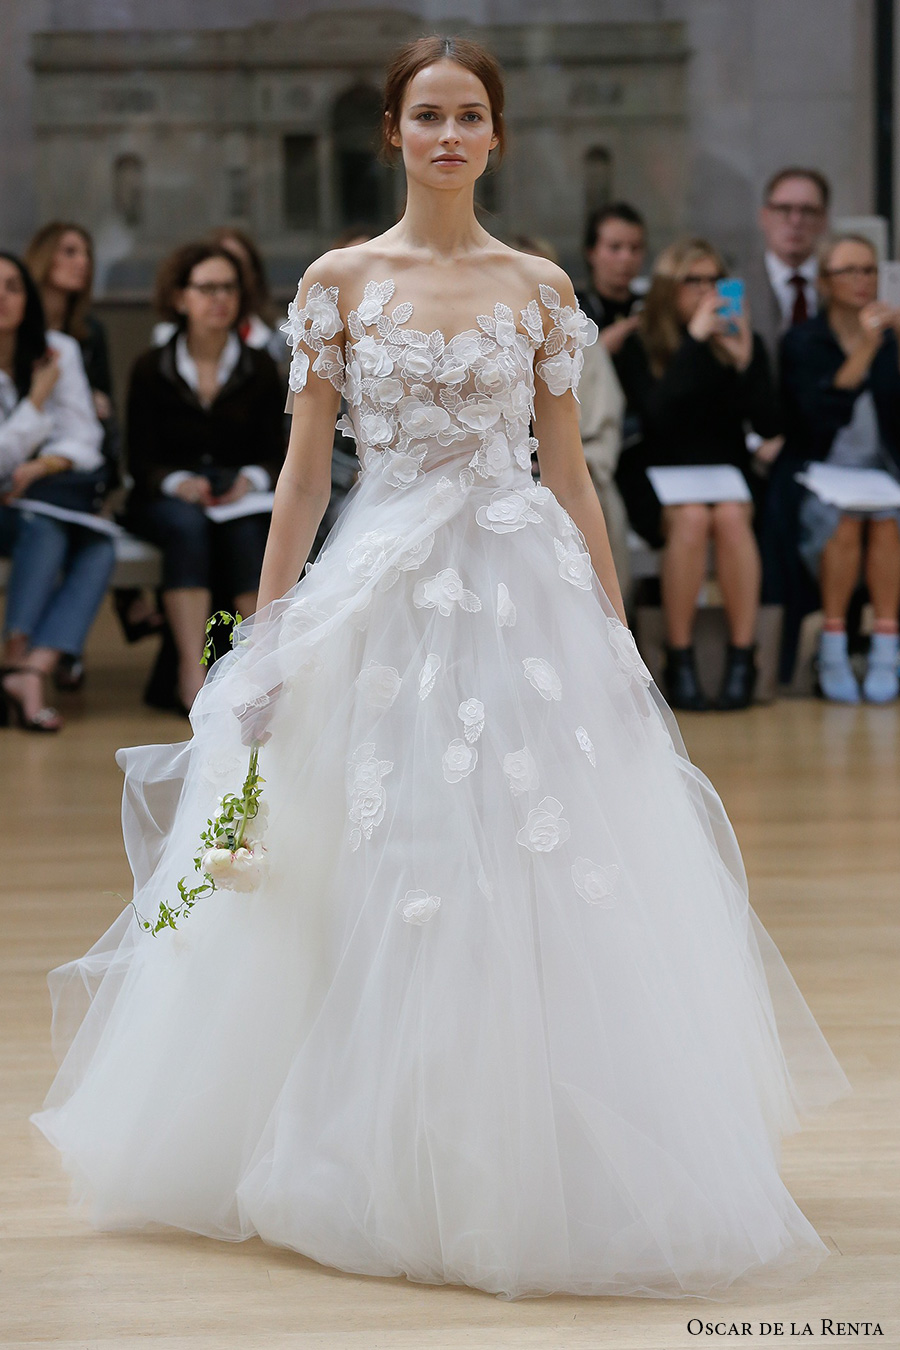 Oscar de la renta spring 2018 wedding dresses new york for Oscar de la renta short wedding dress